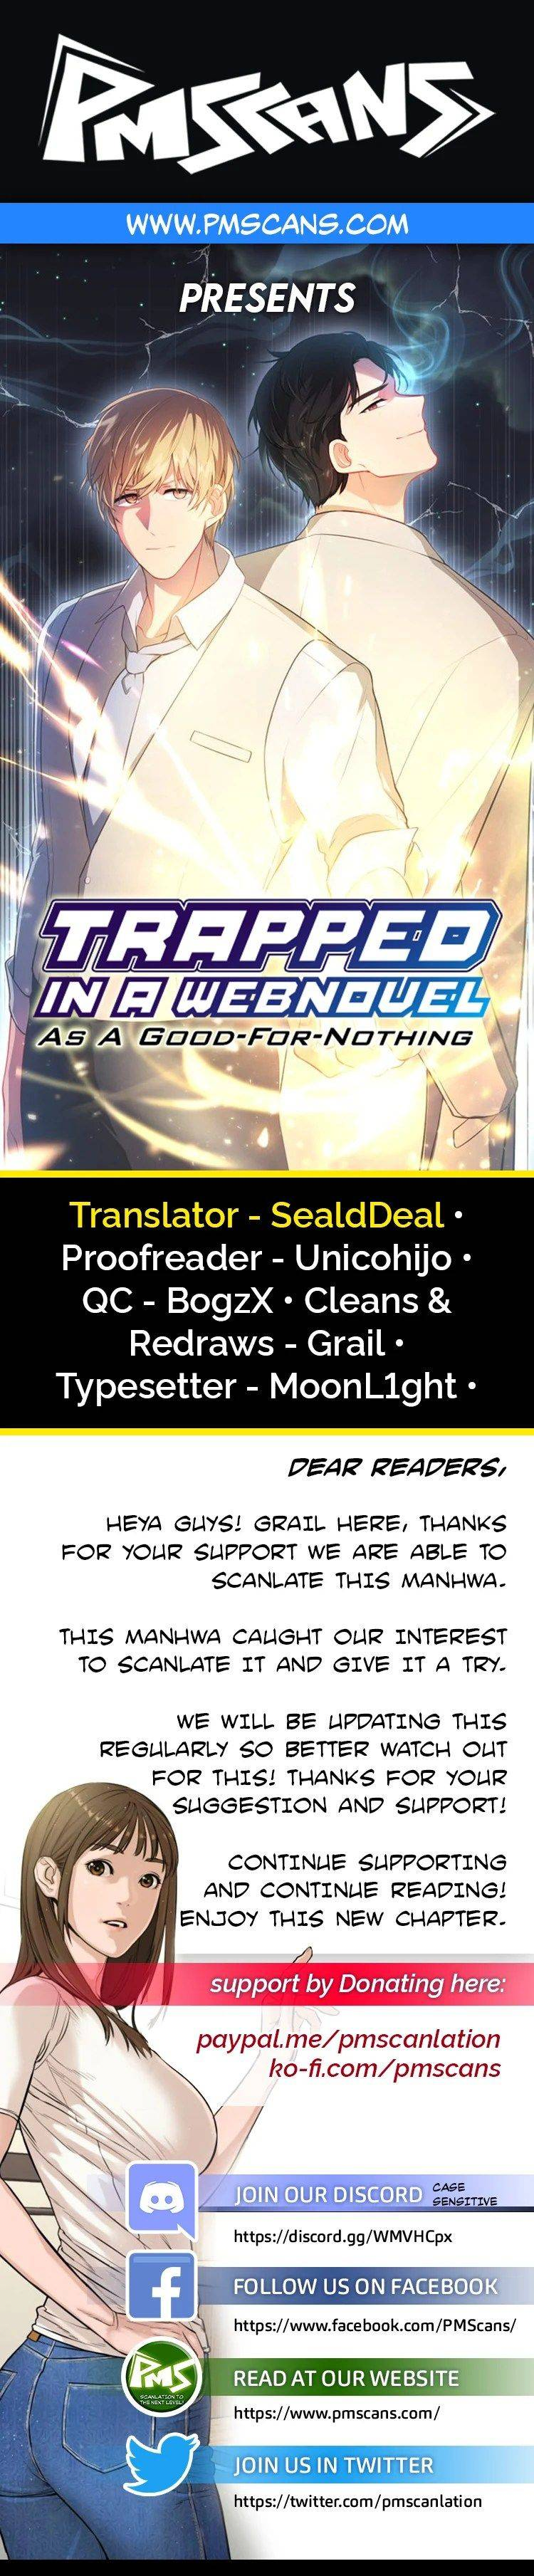 Trapped In A Webnovel As A Good-For-Nothing - chapter 50 - #1